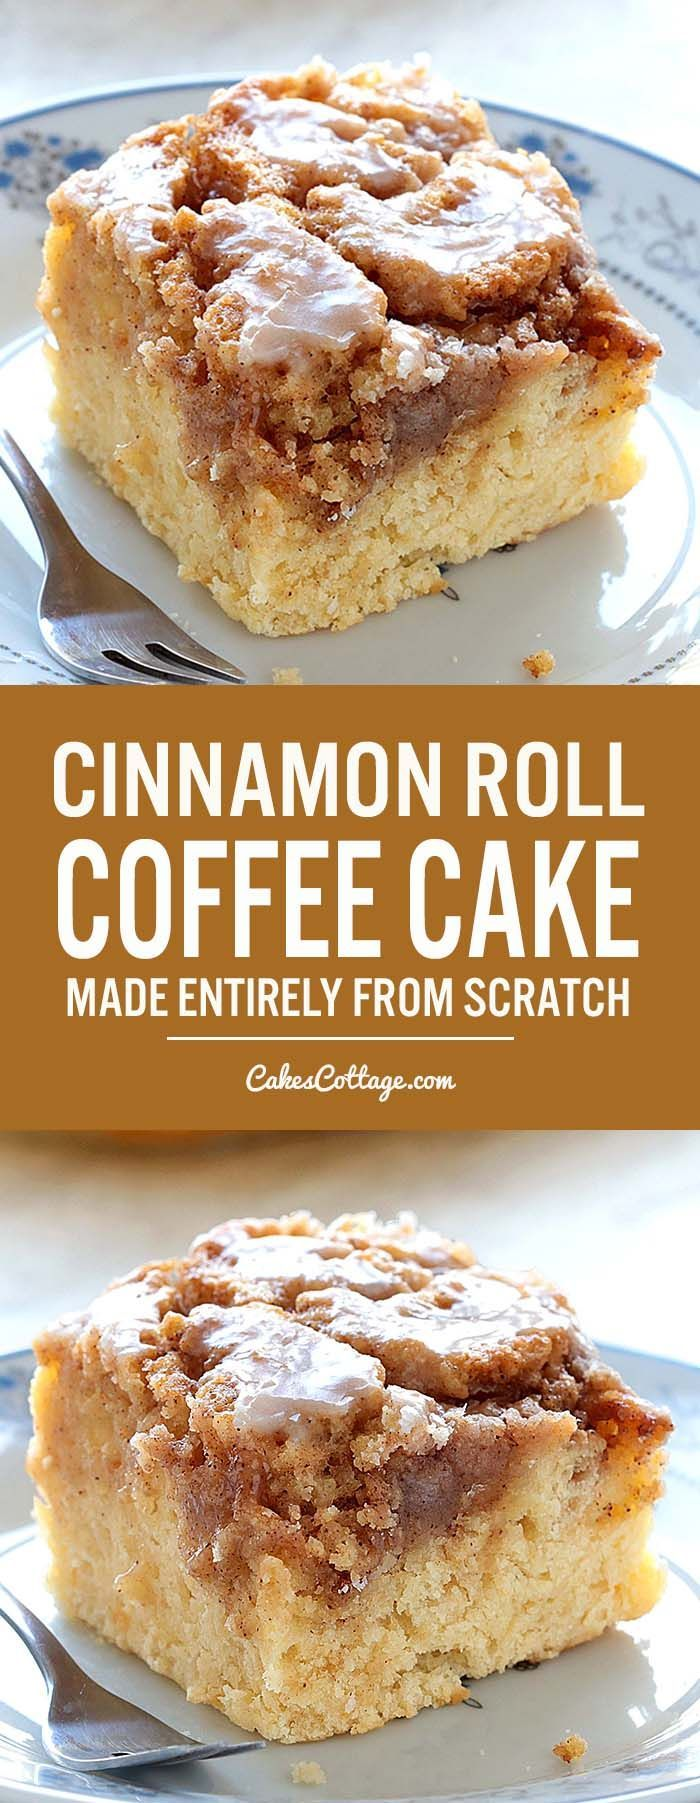 755 best breakfast ideas images on pinterest baking recipes easy cinnamon roll coffee cake forumfinder Image collections